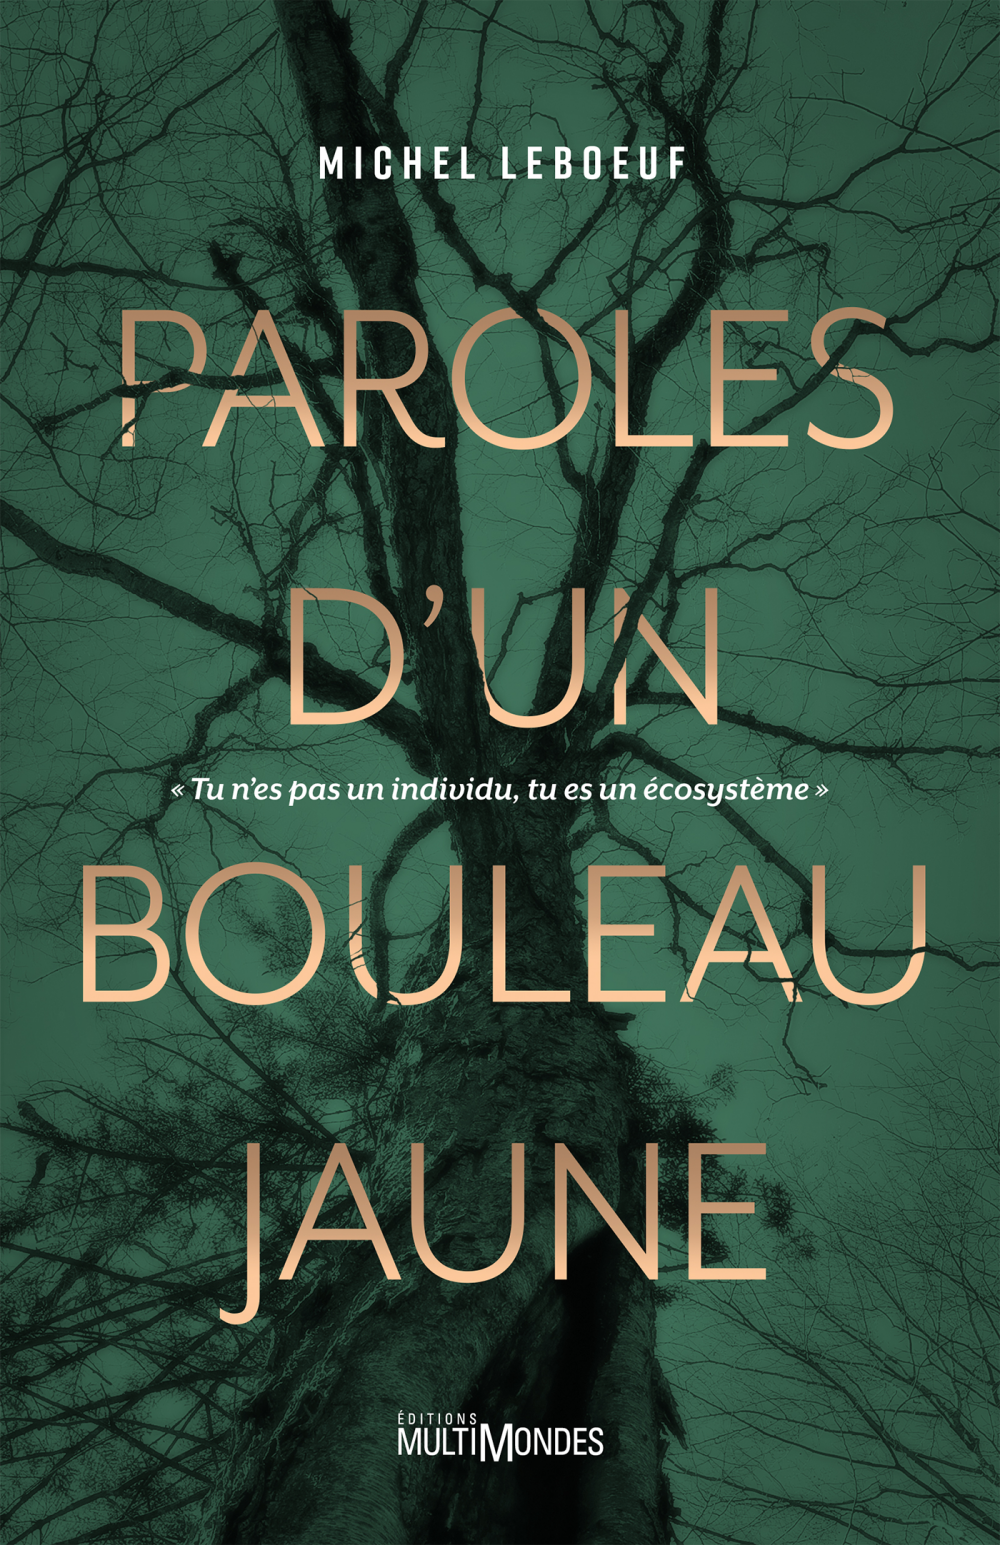 Paroles d'un bouleau jaune